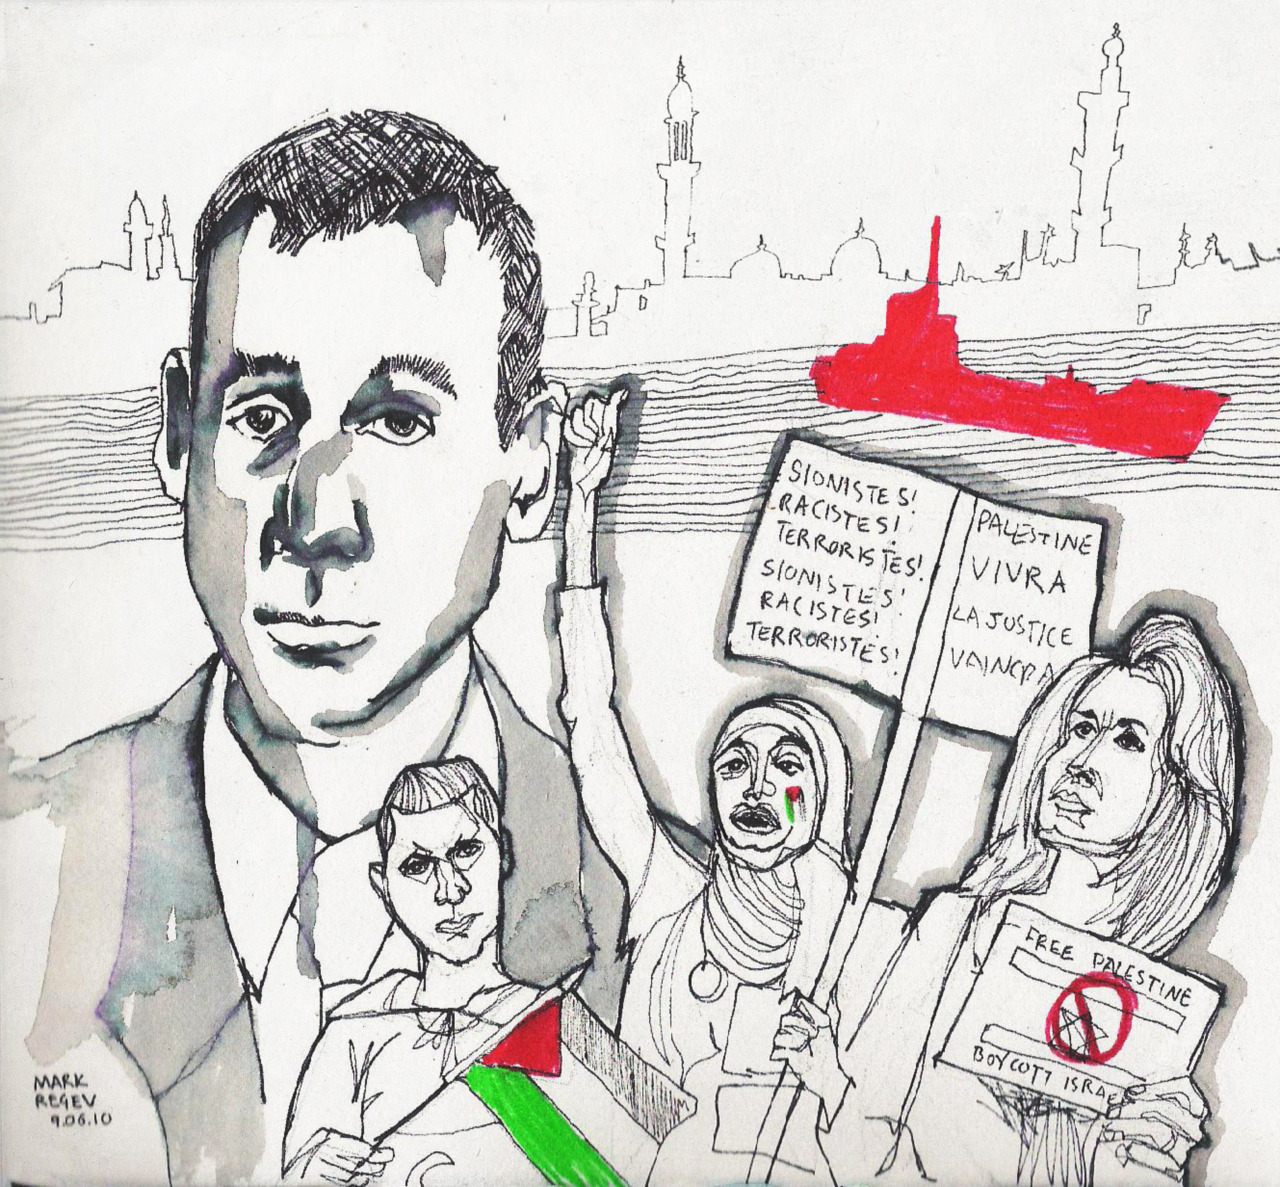 This week my portrait is of Mark Regev. He is a spokesman for the Israeli government. Since the events of last week and the sizure of a ship by Israel bound for Gaza, Regev has been the voice of Israel in the British media.